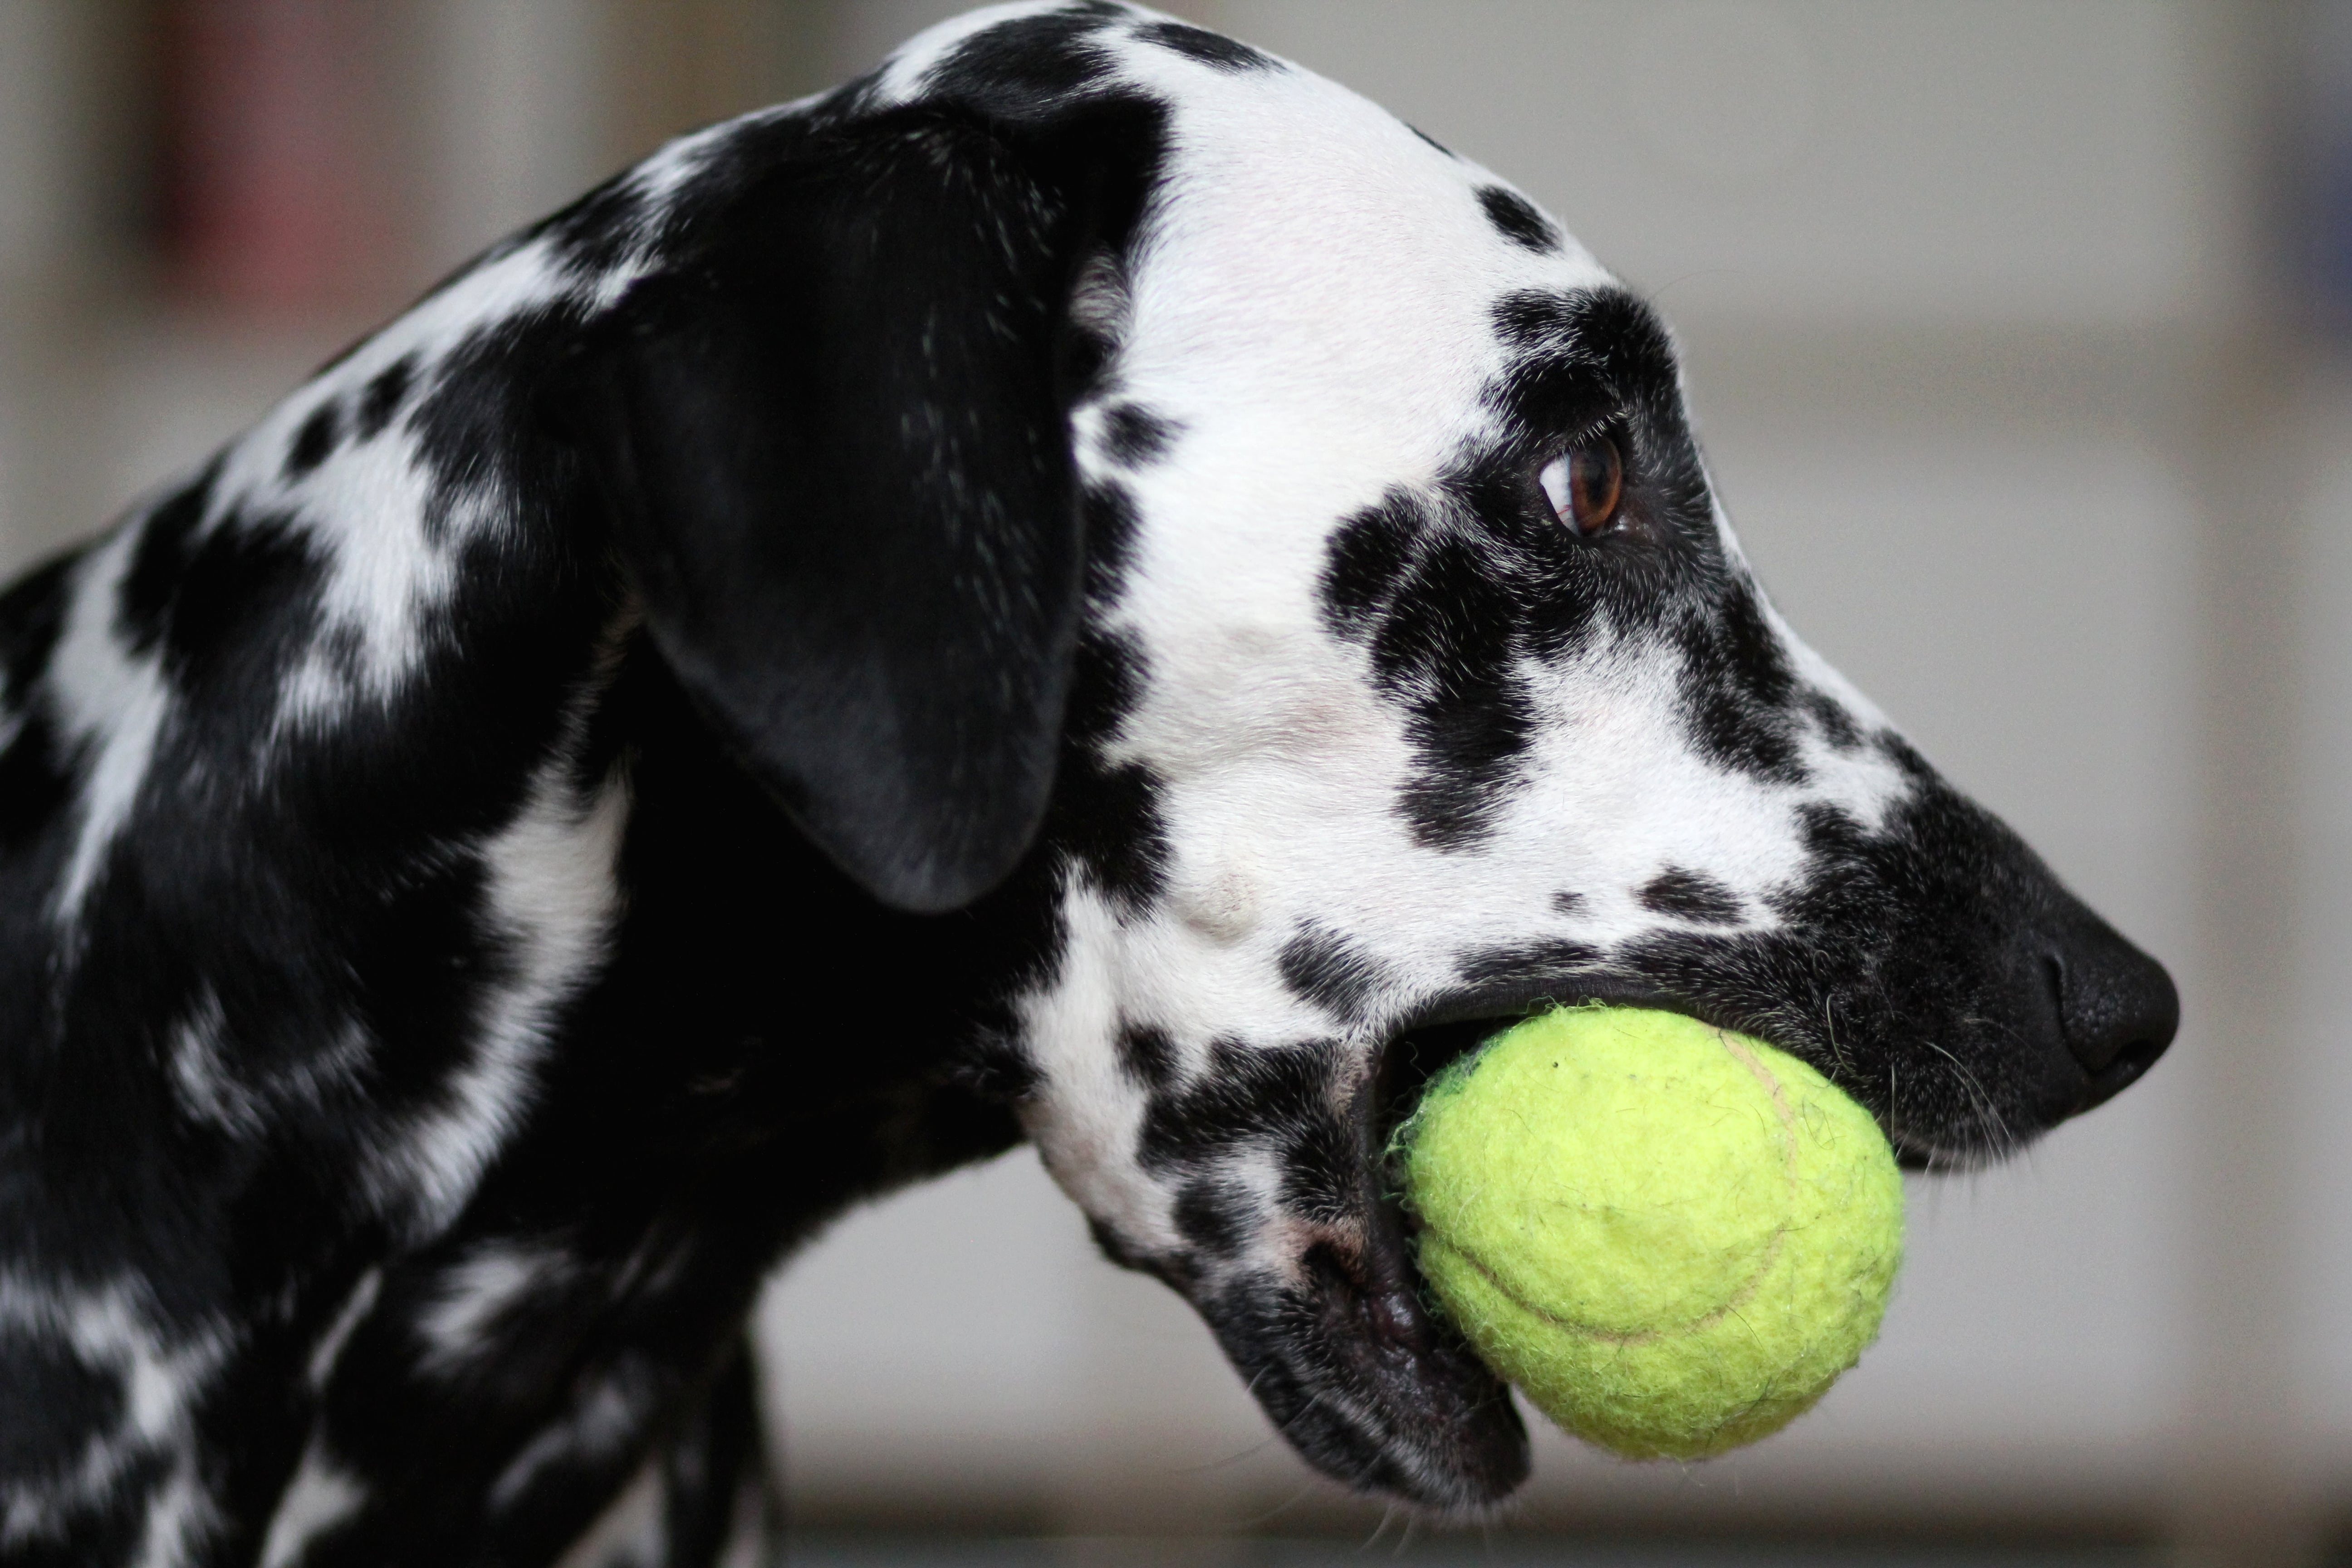 Automatic ball launchers for dogs: Teach them to play fetch